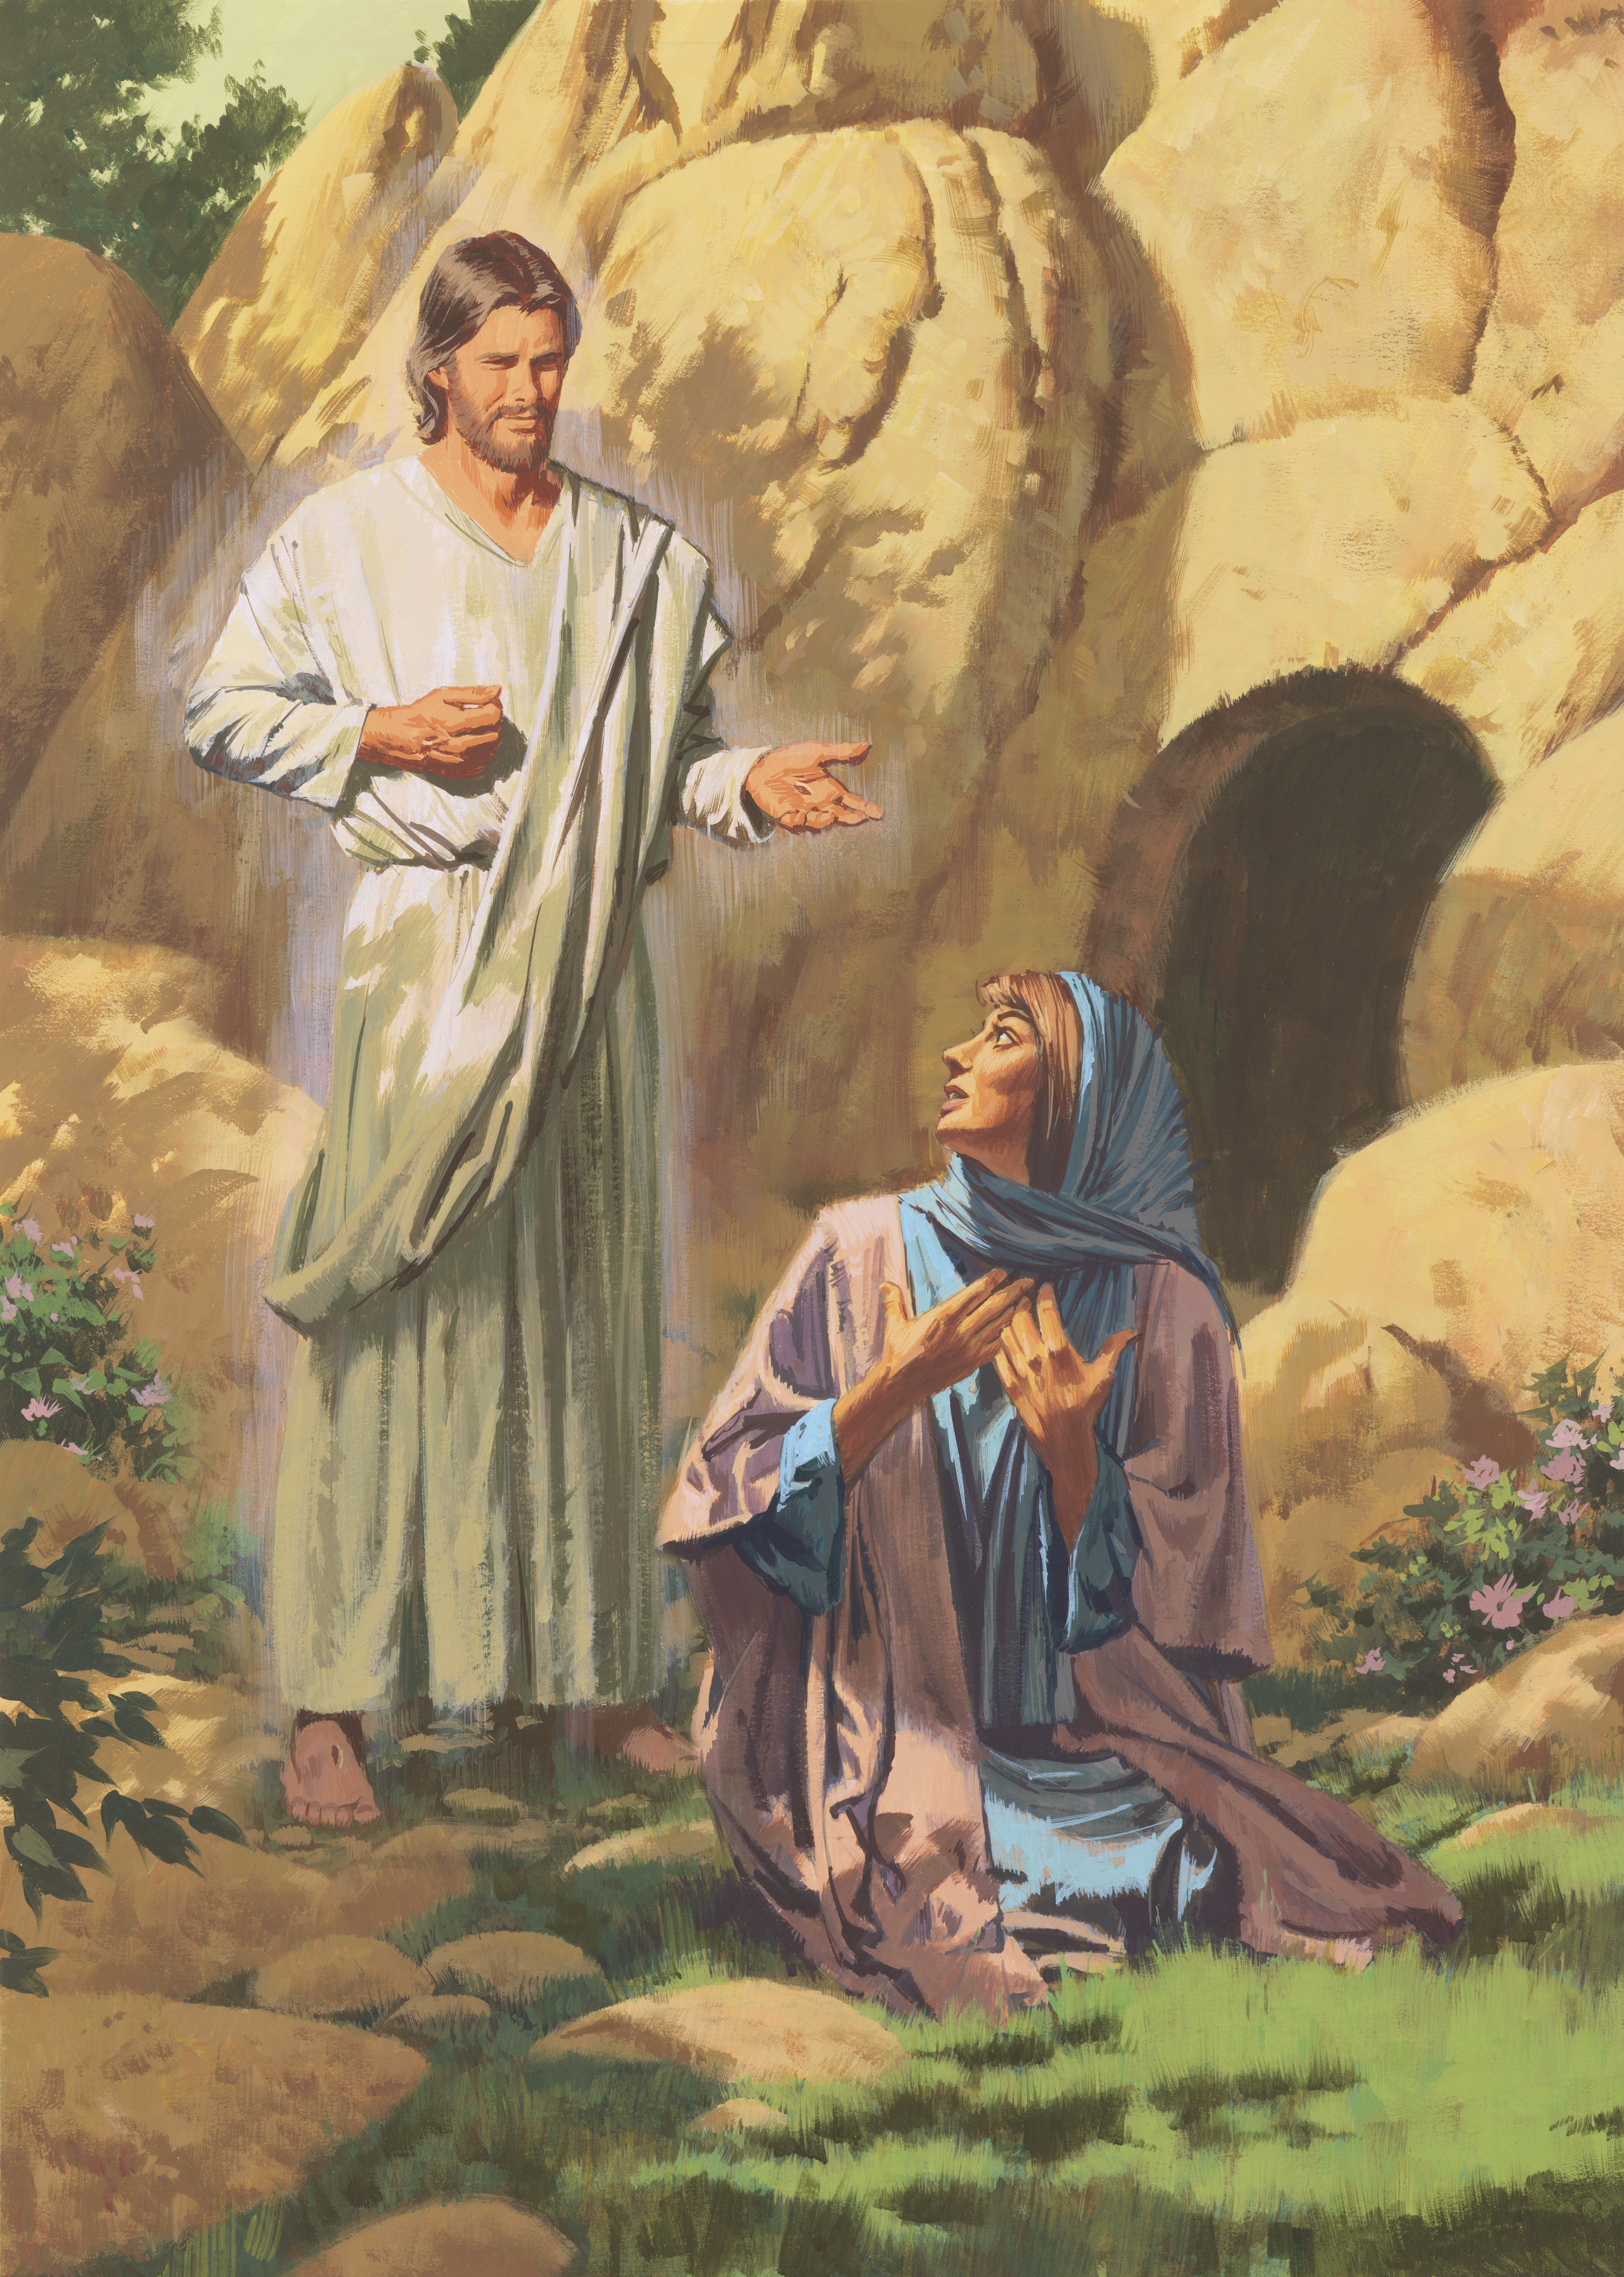 An illustration by Paul Mann showing the resurrected Christ talking to Mary.